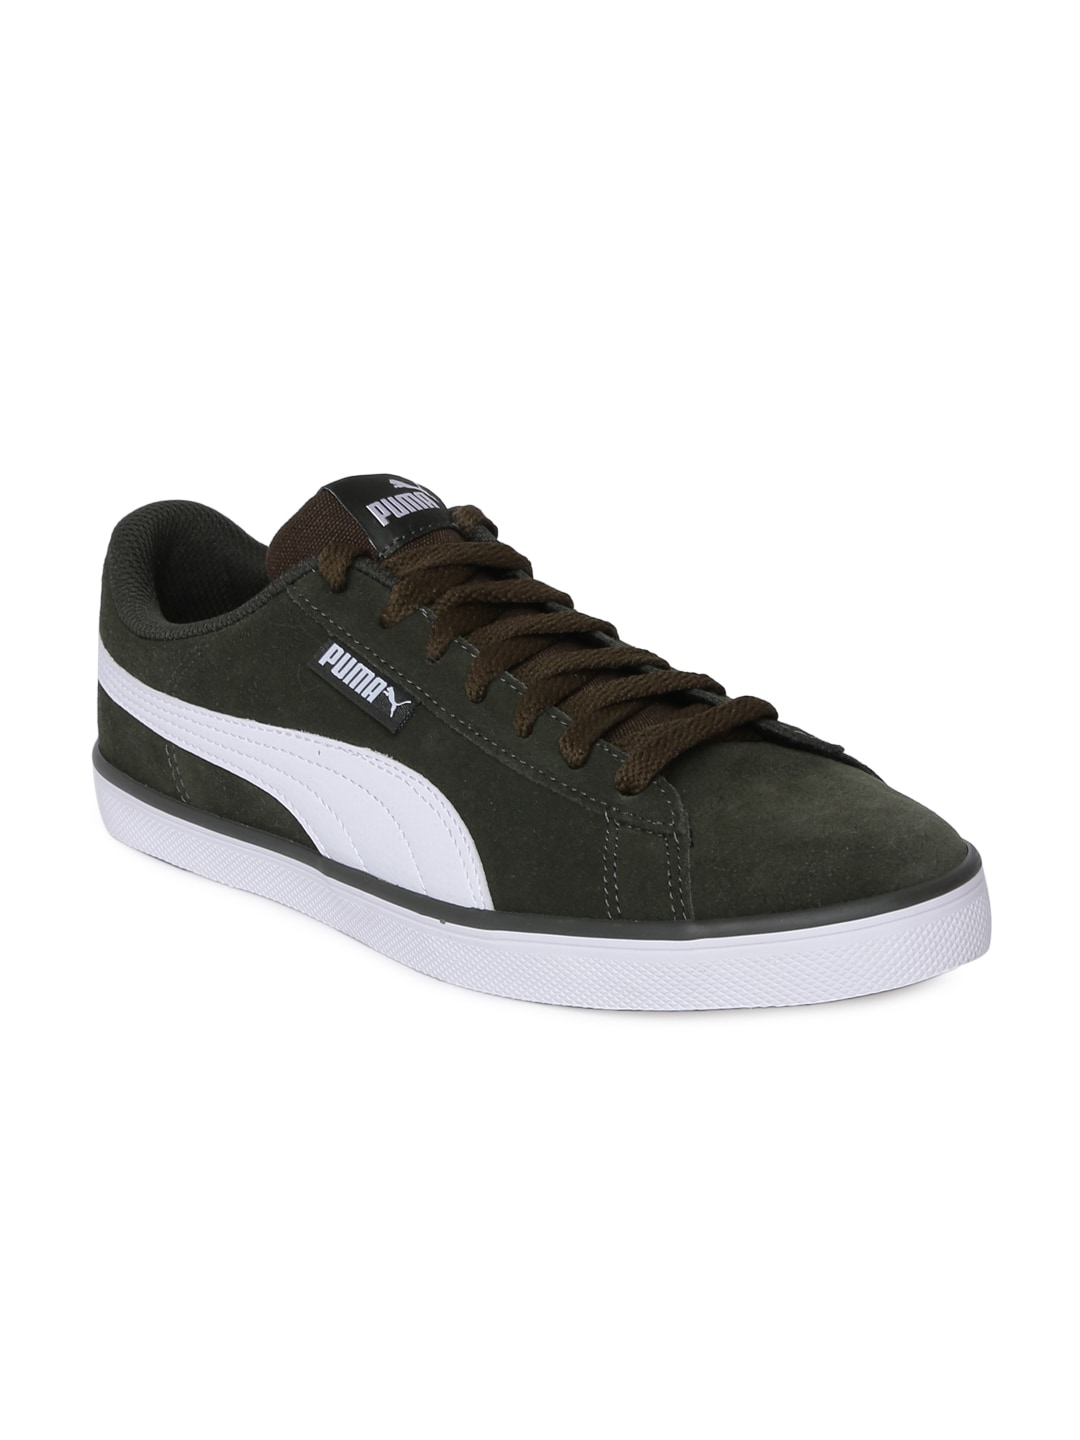 b24f21883947 Casual Shoes For Men - Buy Casual   Flat Shoes For Men